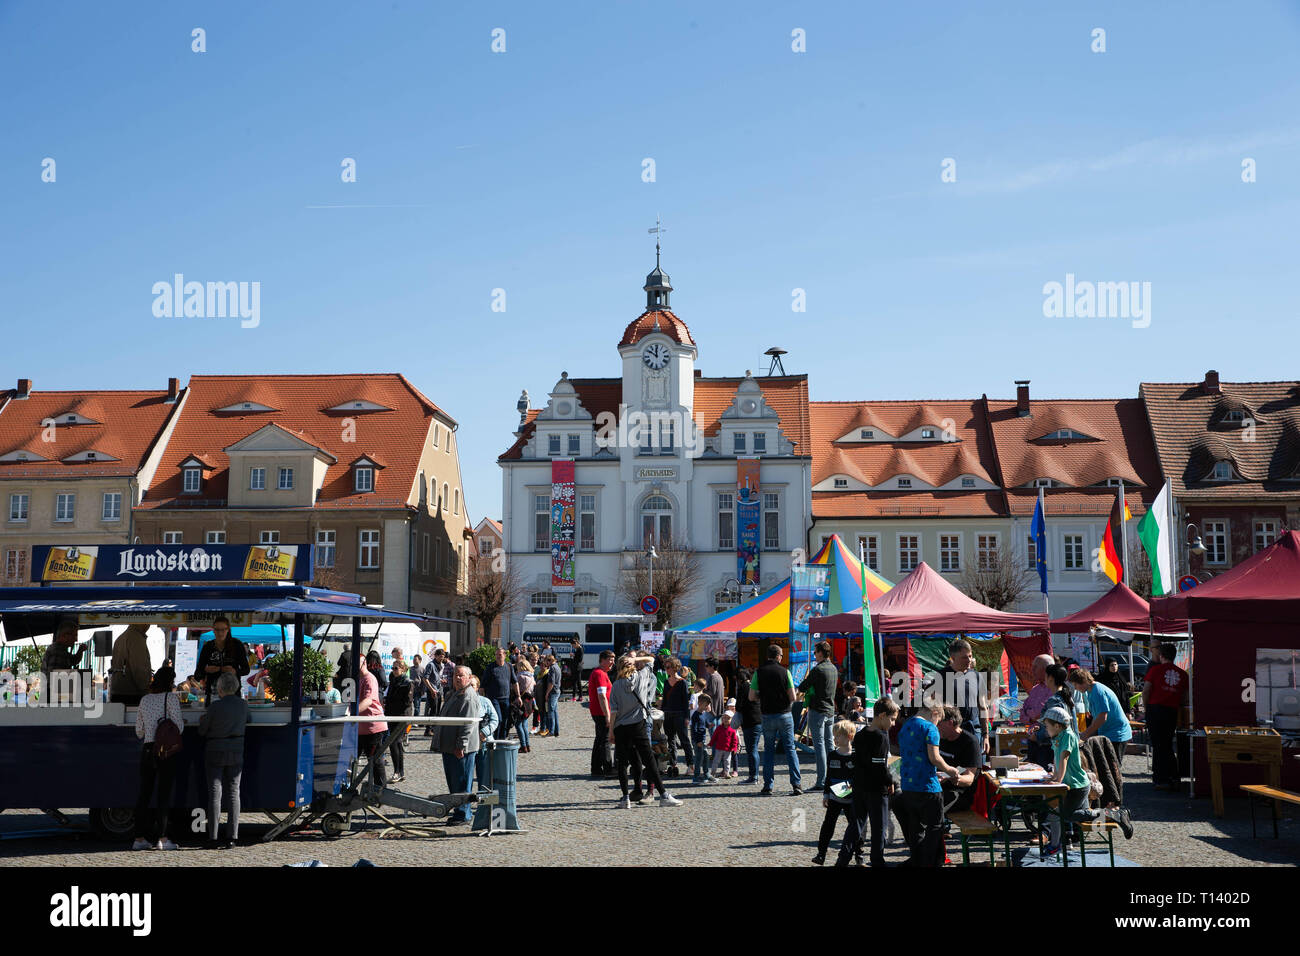 Ostritz, Germany  23rd Mar, 2019  People celebrate at noon on the